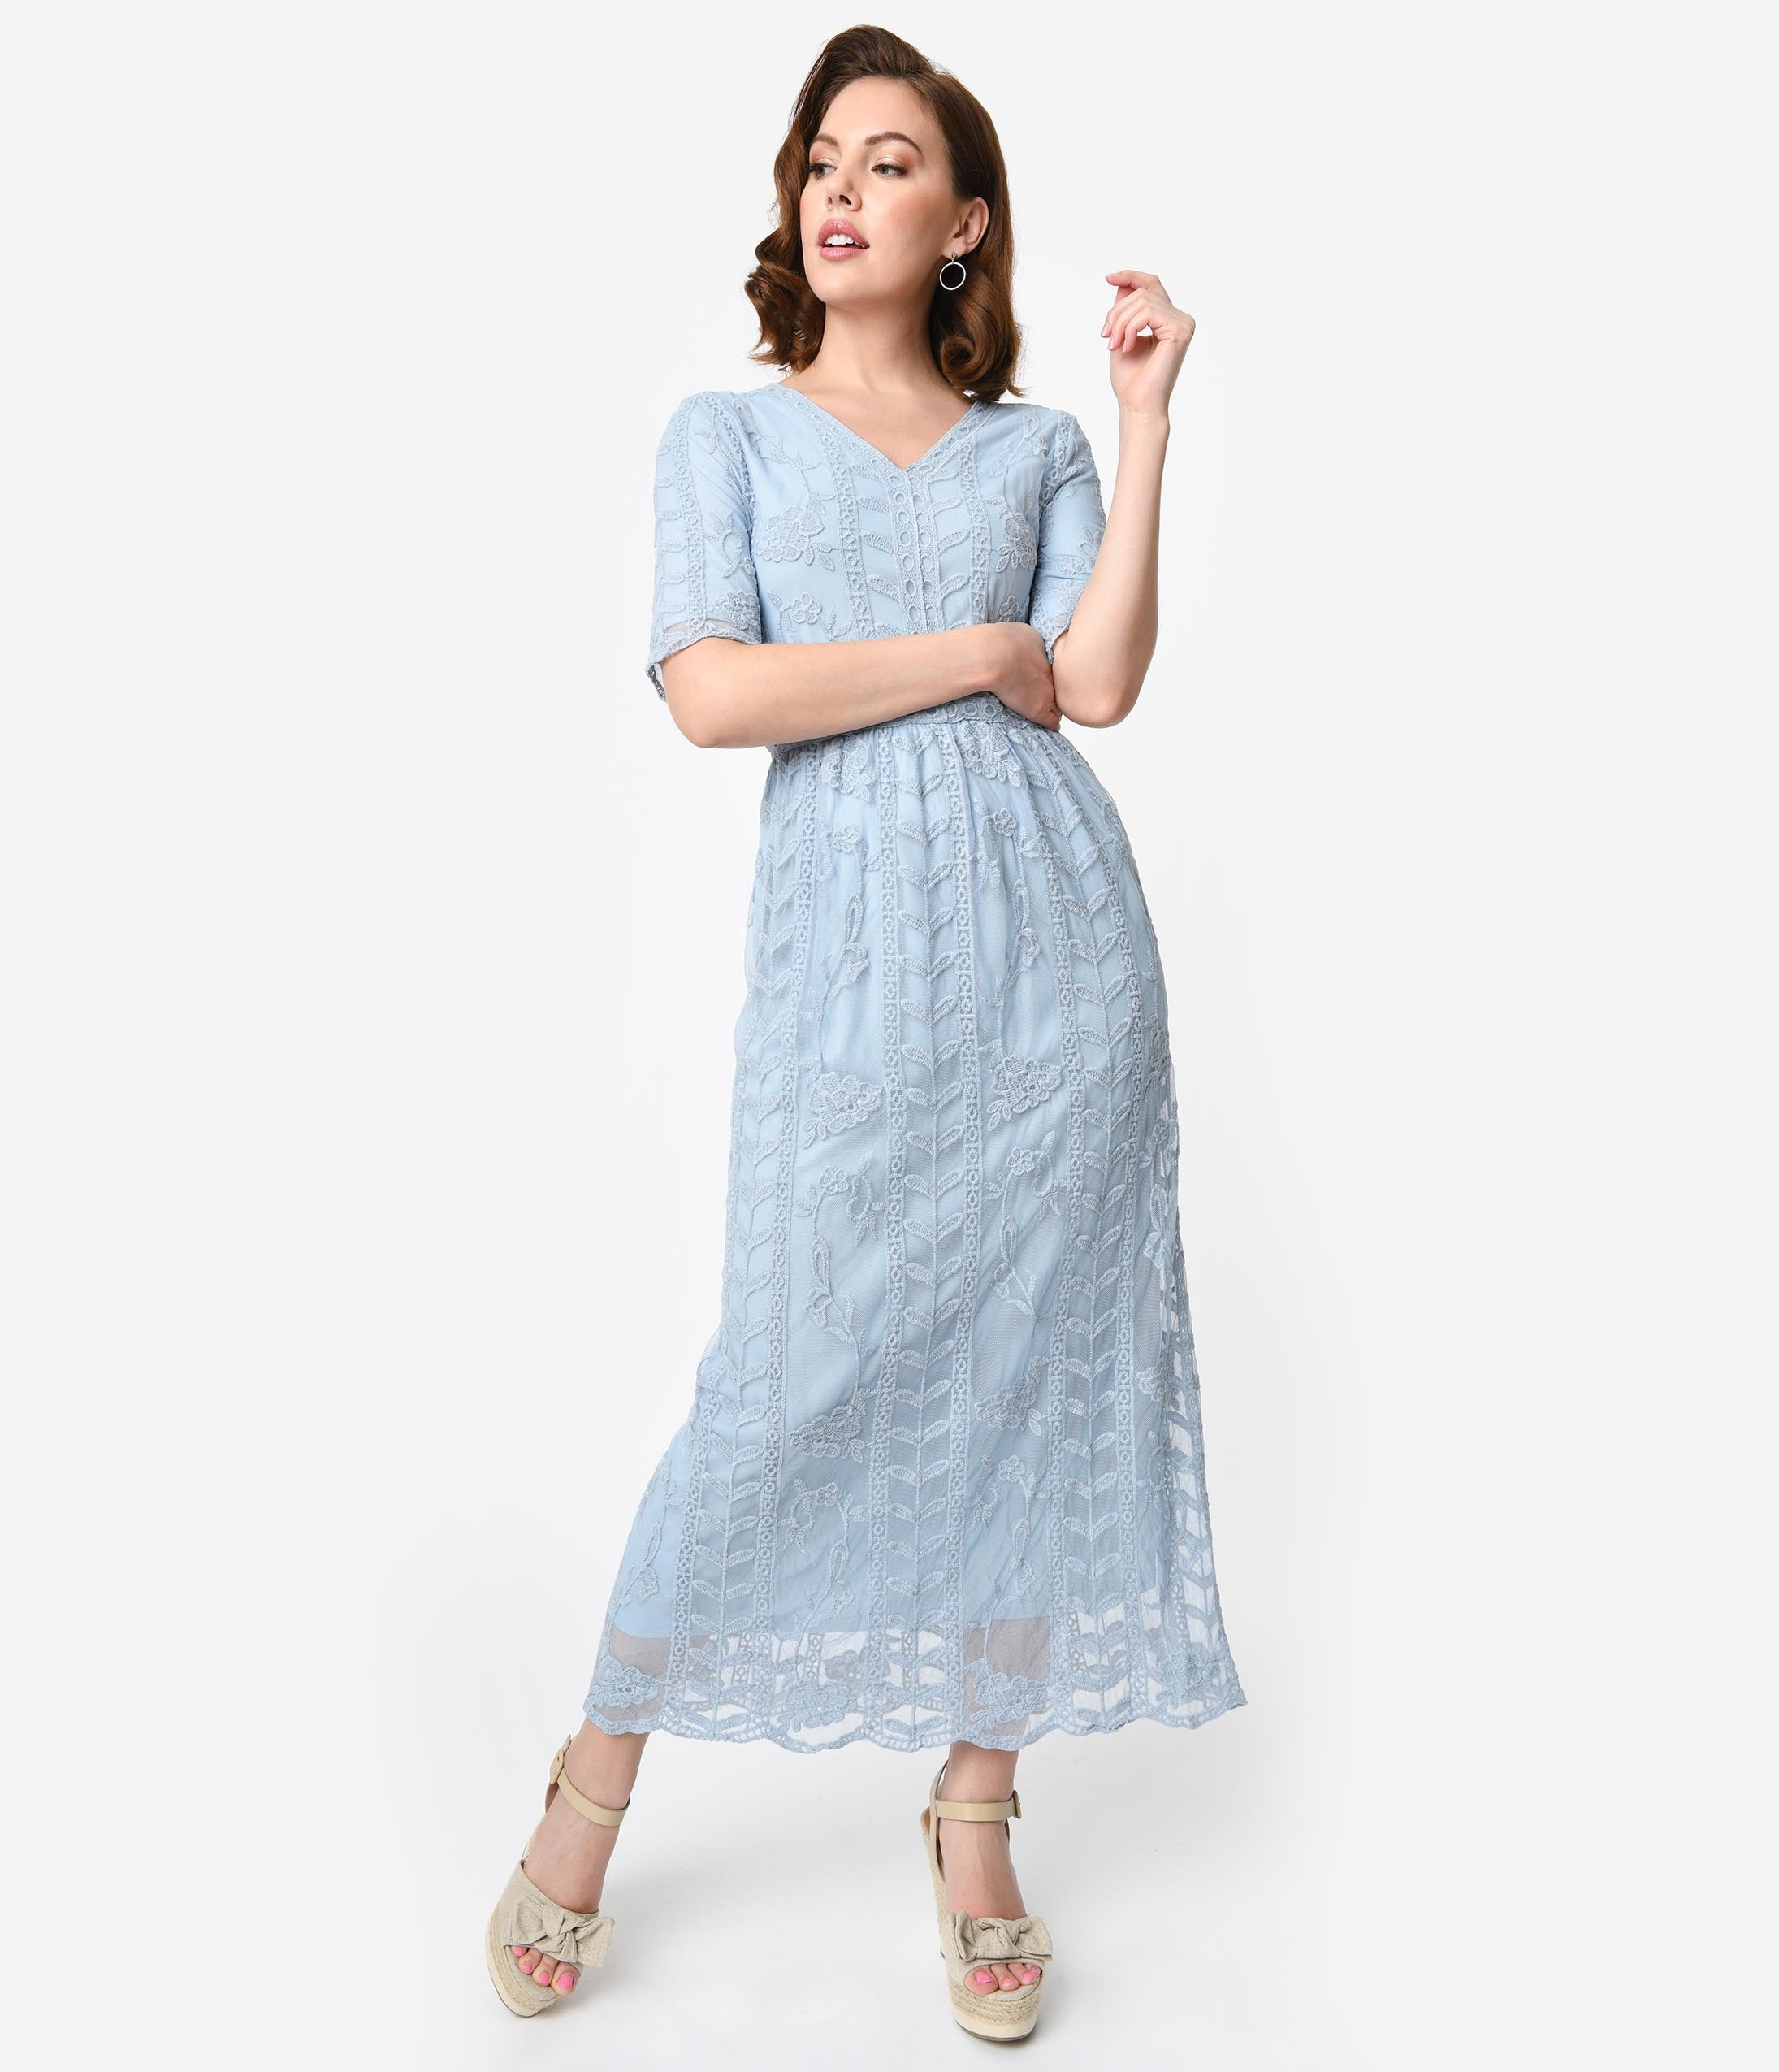 Edwardian Ladies Clothing – 1900, 1910s, Titanic Era 1940S Style Antique Blue Lace Short Sleeved Long Dress $44.00 AT vintagedancer.com